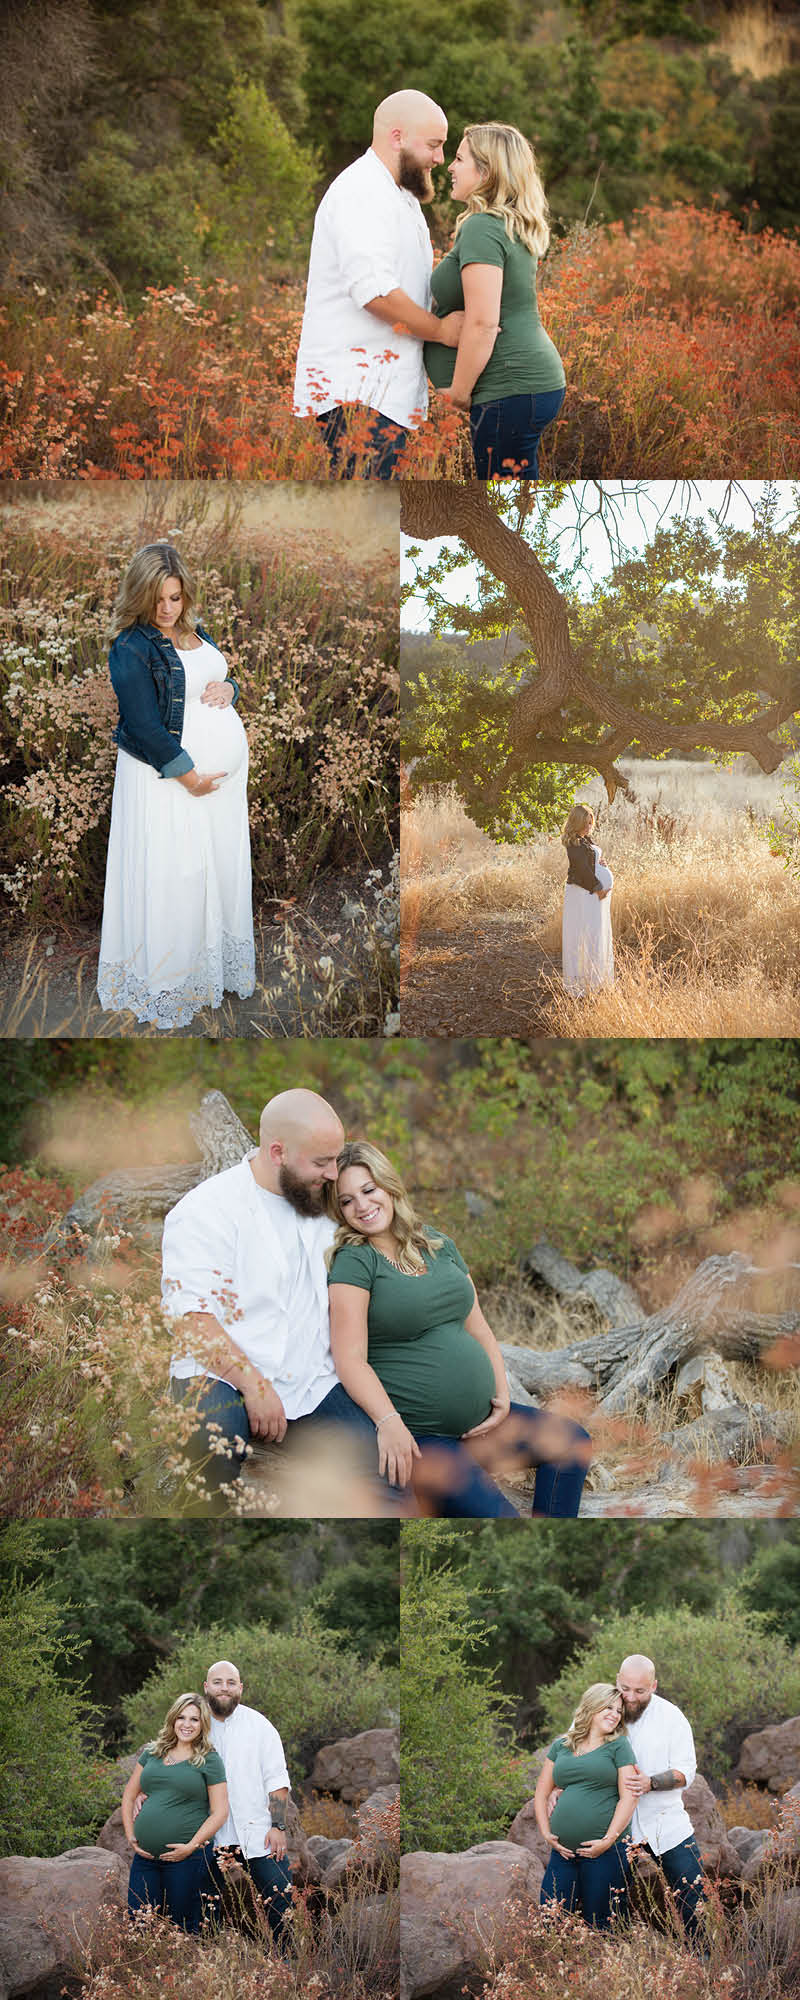 Best maternity photographer in Westlake Village